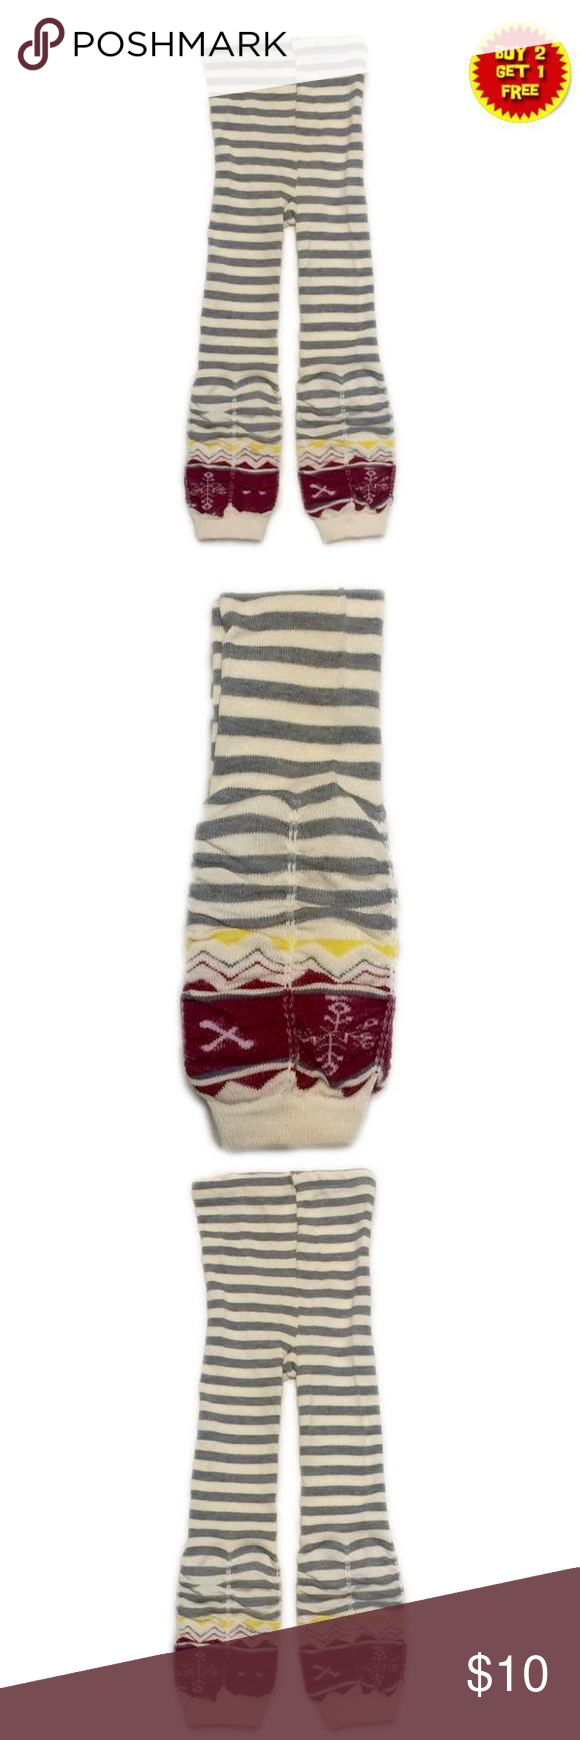 """🎈B2G1🎈NWOT Striped Gray Ruched Footless Tights NWOT cream colored, with striped gray footless tights, with ruching details on legs. Size 105cm on tag.🎈This item is eligible for the """"Buy 2 Get 1 Free"""" promotion in my closet with a minimum purchase of $15. Free items are to be of equal or lesser in value than the other items. Accessories Socks & Tights"""